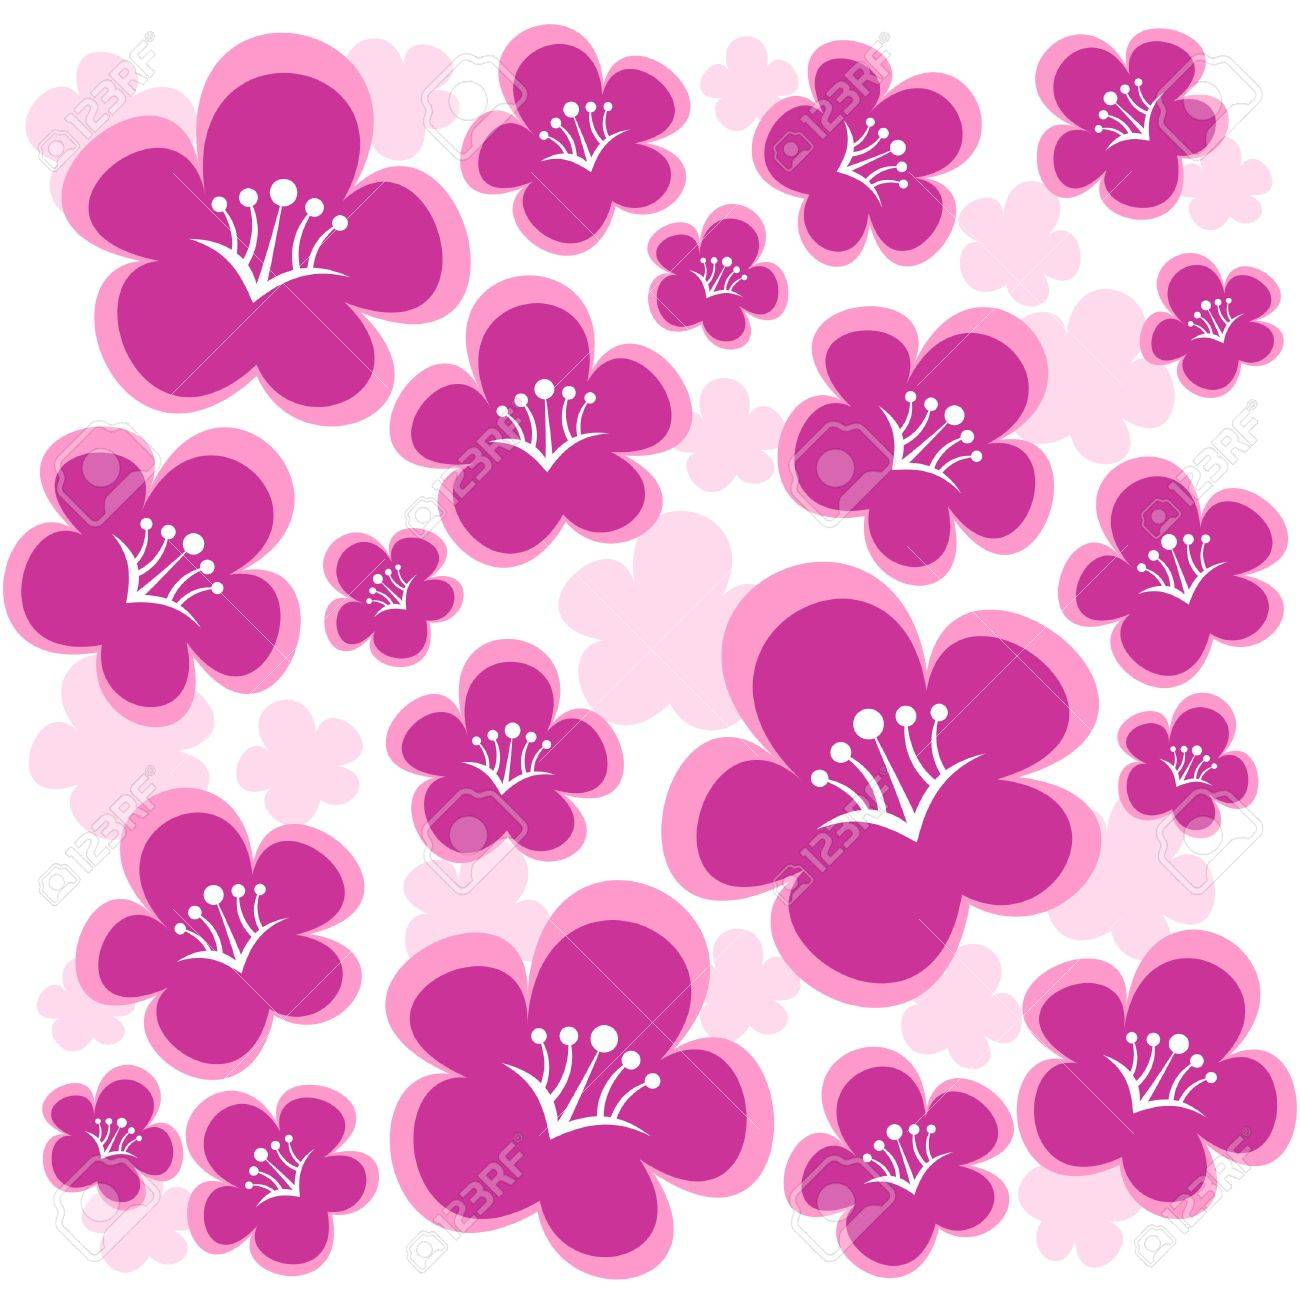 Cartoon pink flowers isolated on a white background royalty free cartoon pink flowers isolated on a white background stock vector 4395697 mightylinksfo